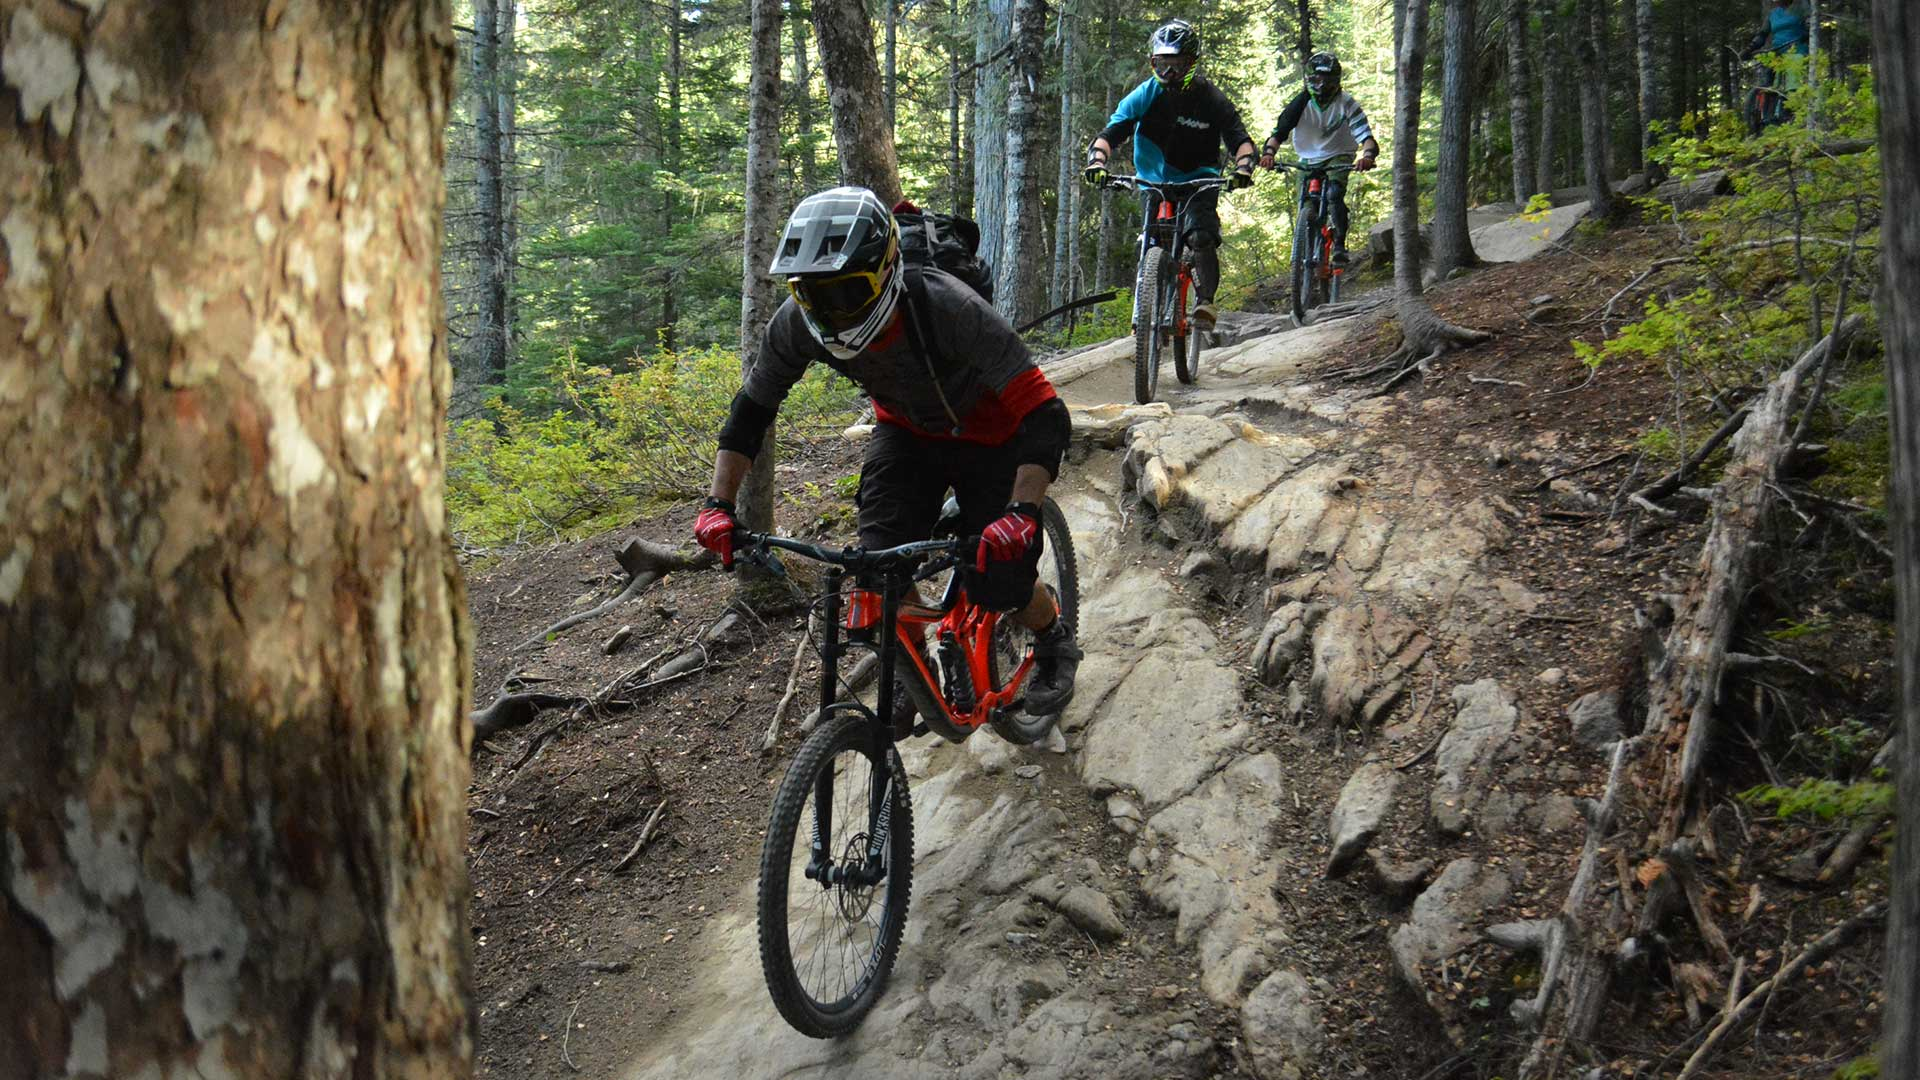 Bike guide taking guests down a rocky trail in the Whistler Mountain Bike Park